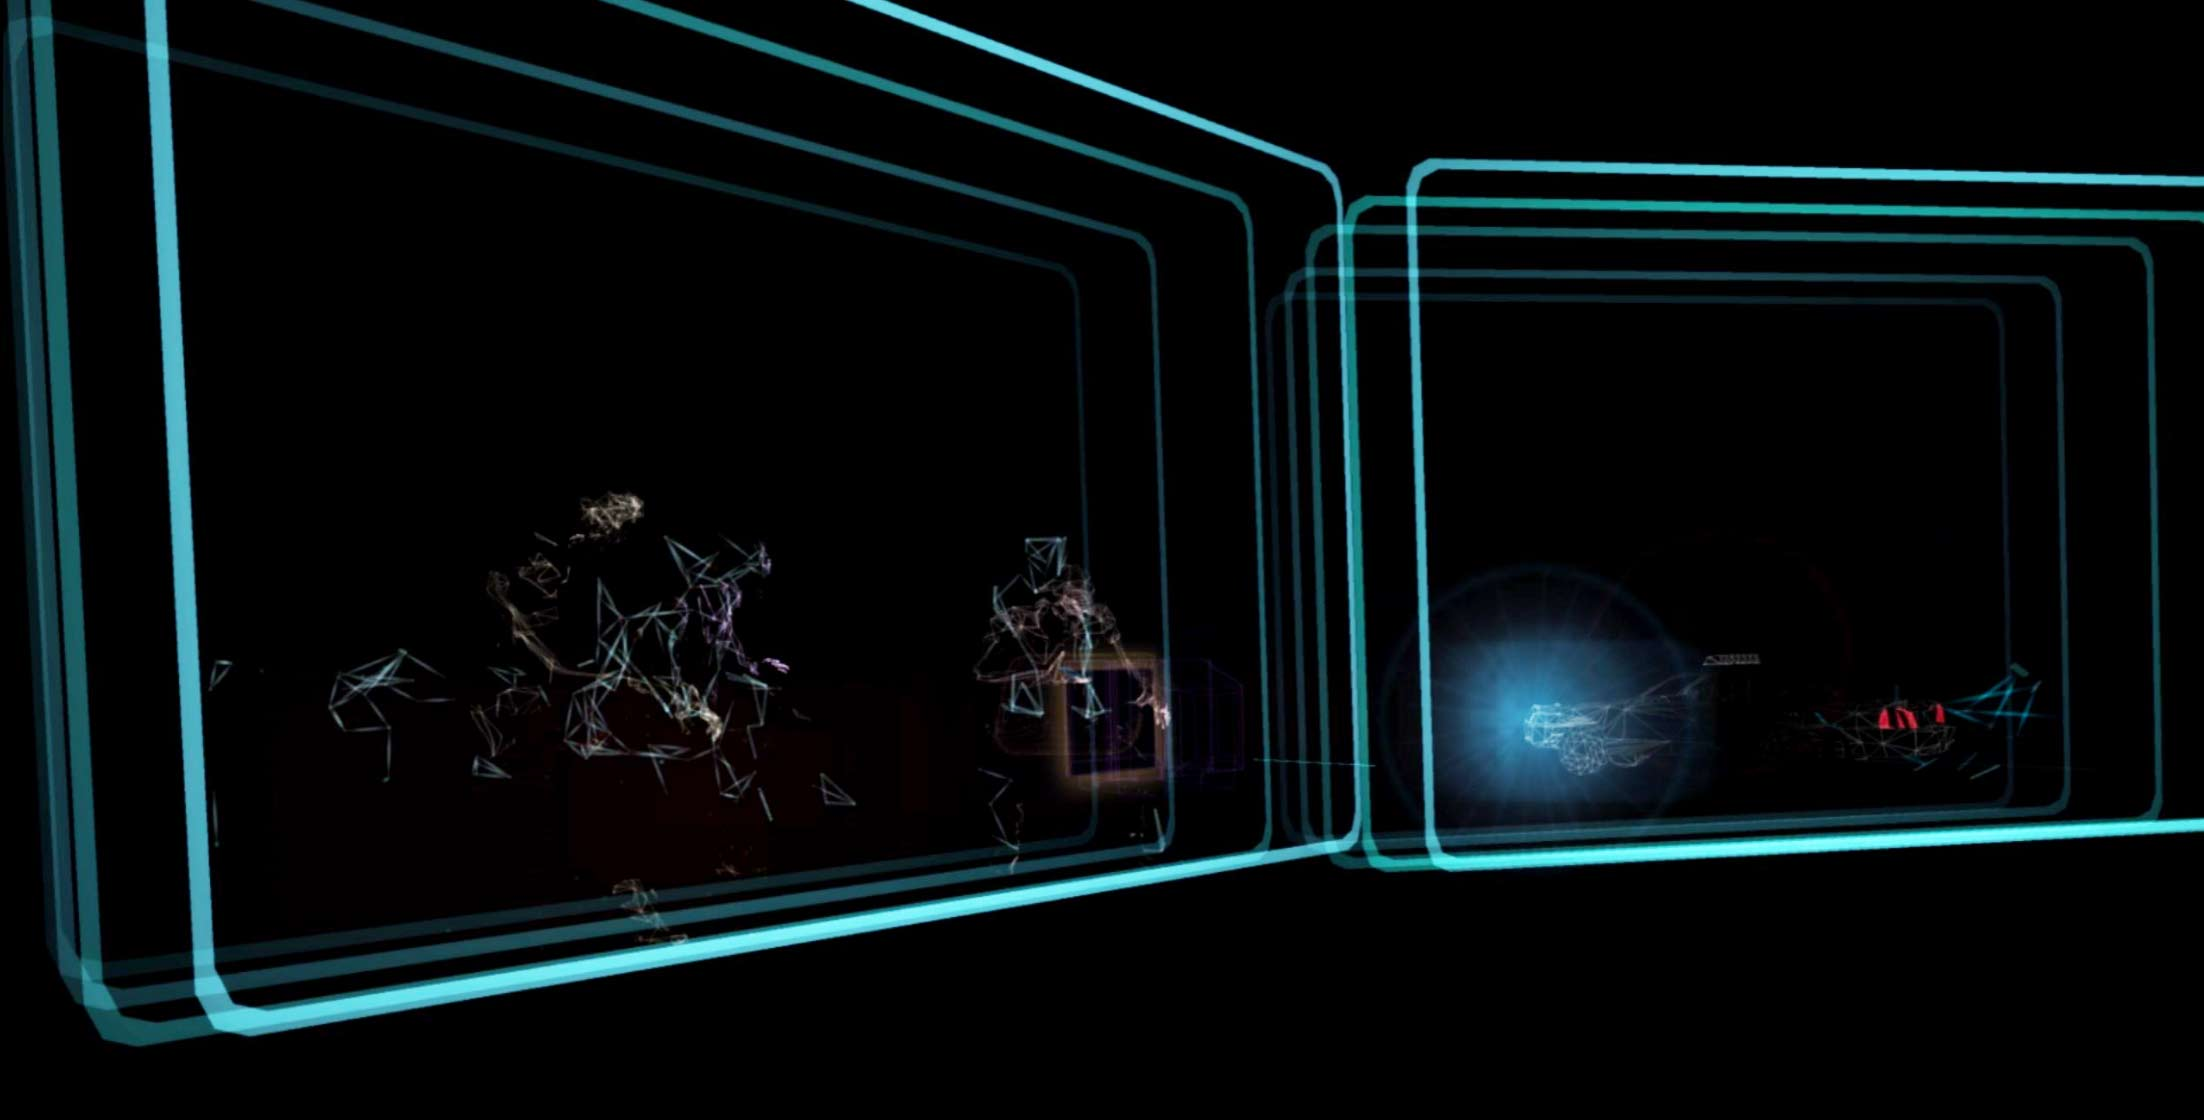 Dispatch-vr-experience-3d-animation-simulation_07.jpg